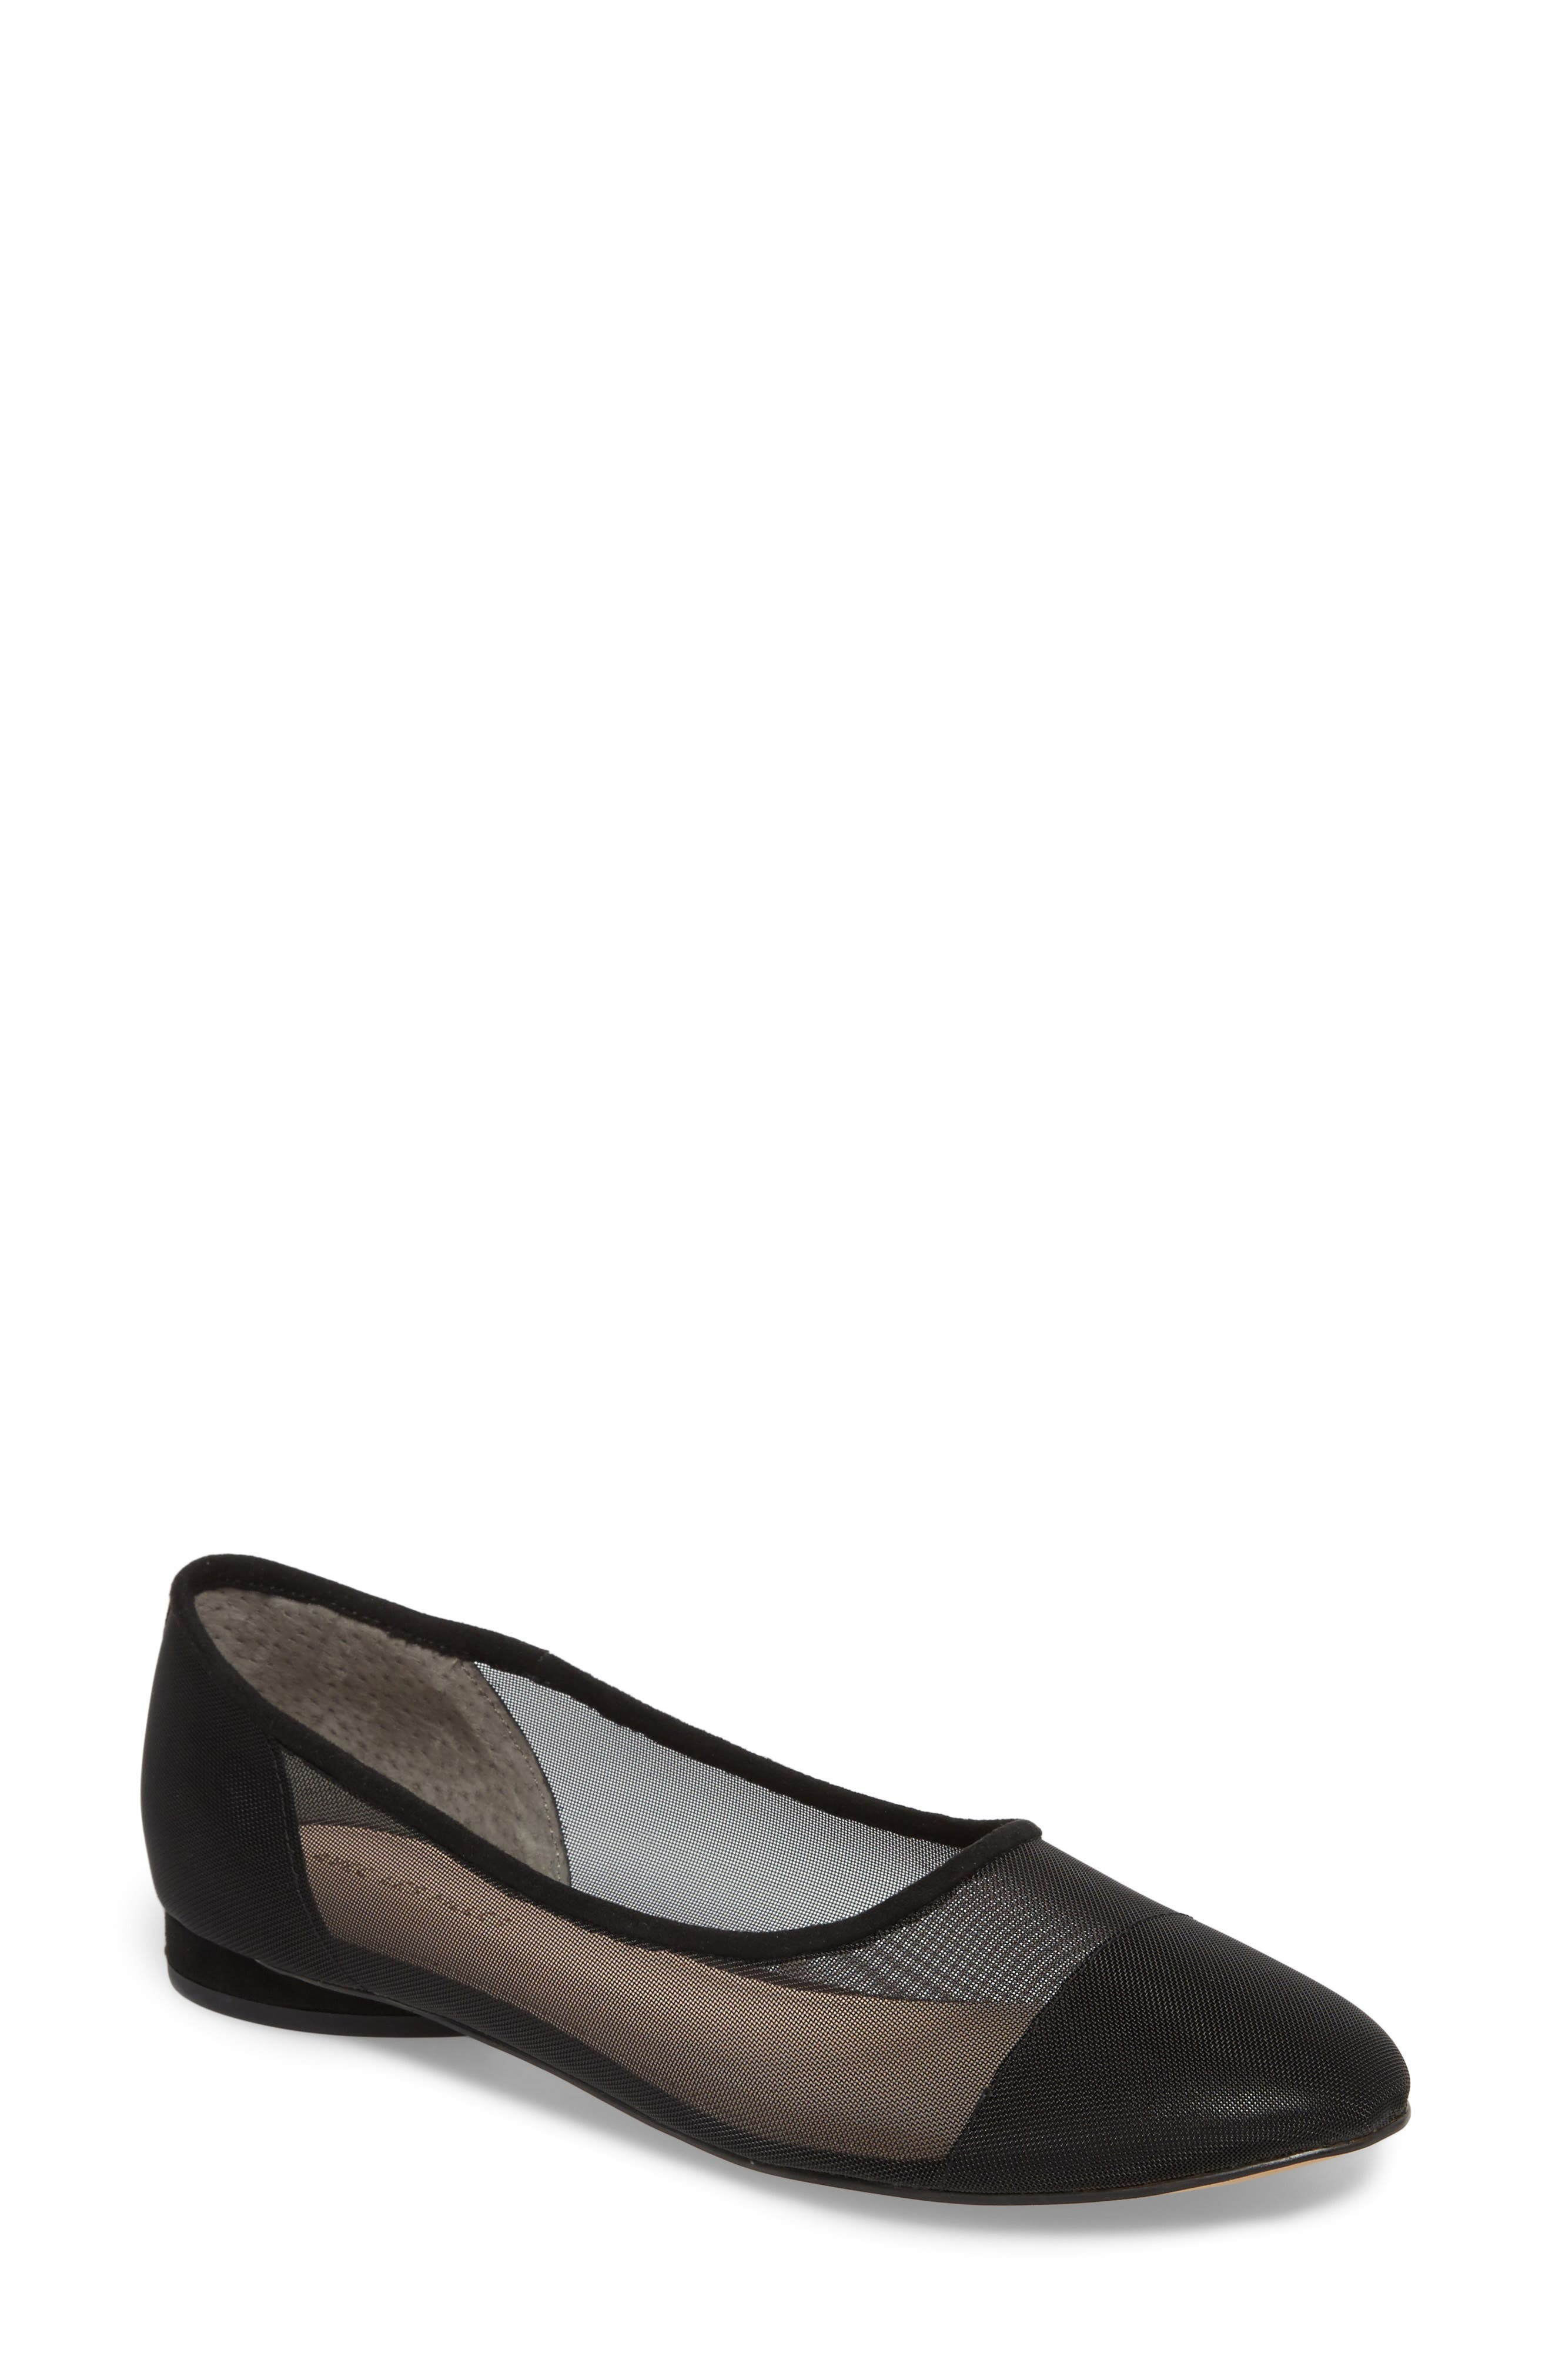 Marian Mesh Inset Flat,                             Main thumbnail 1, color,                             Black Suede